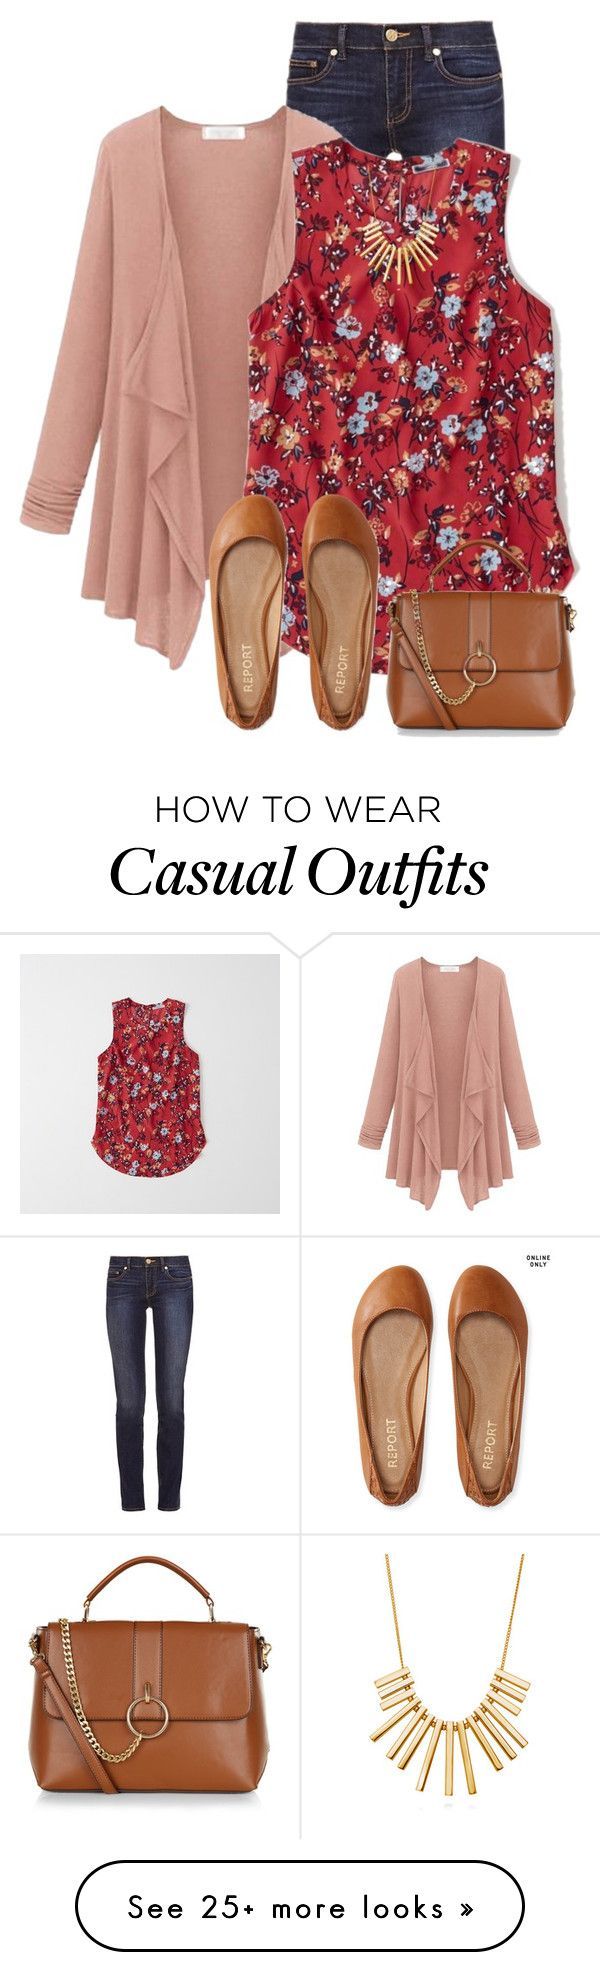 """Untitled #126"" by mindy-2-1 on Polyvore featuring Tory Burch, Abercrombie & Fitch, Aéropostale, BERRICLE and New Look"